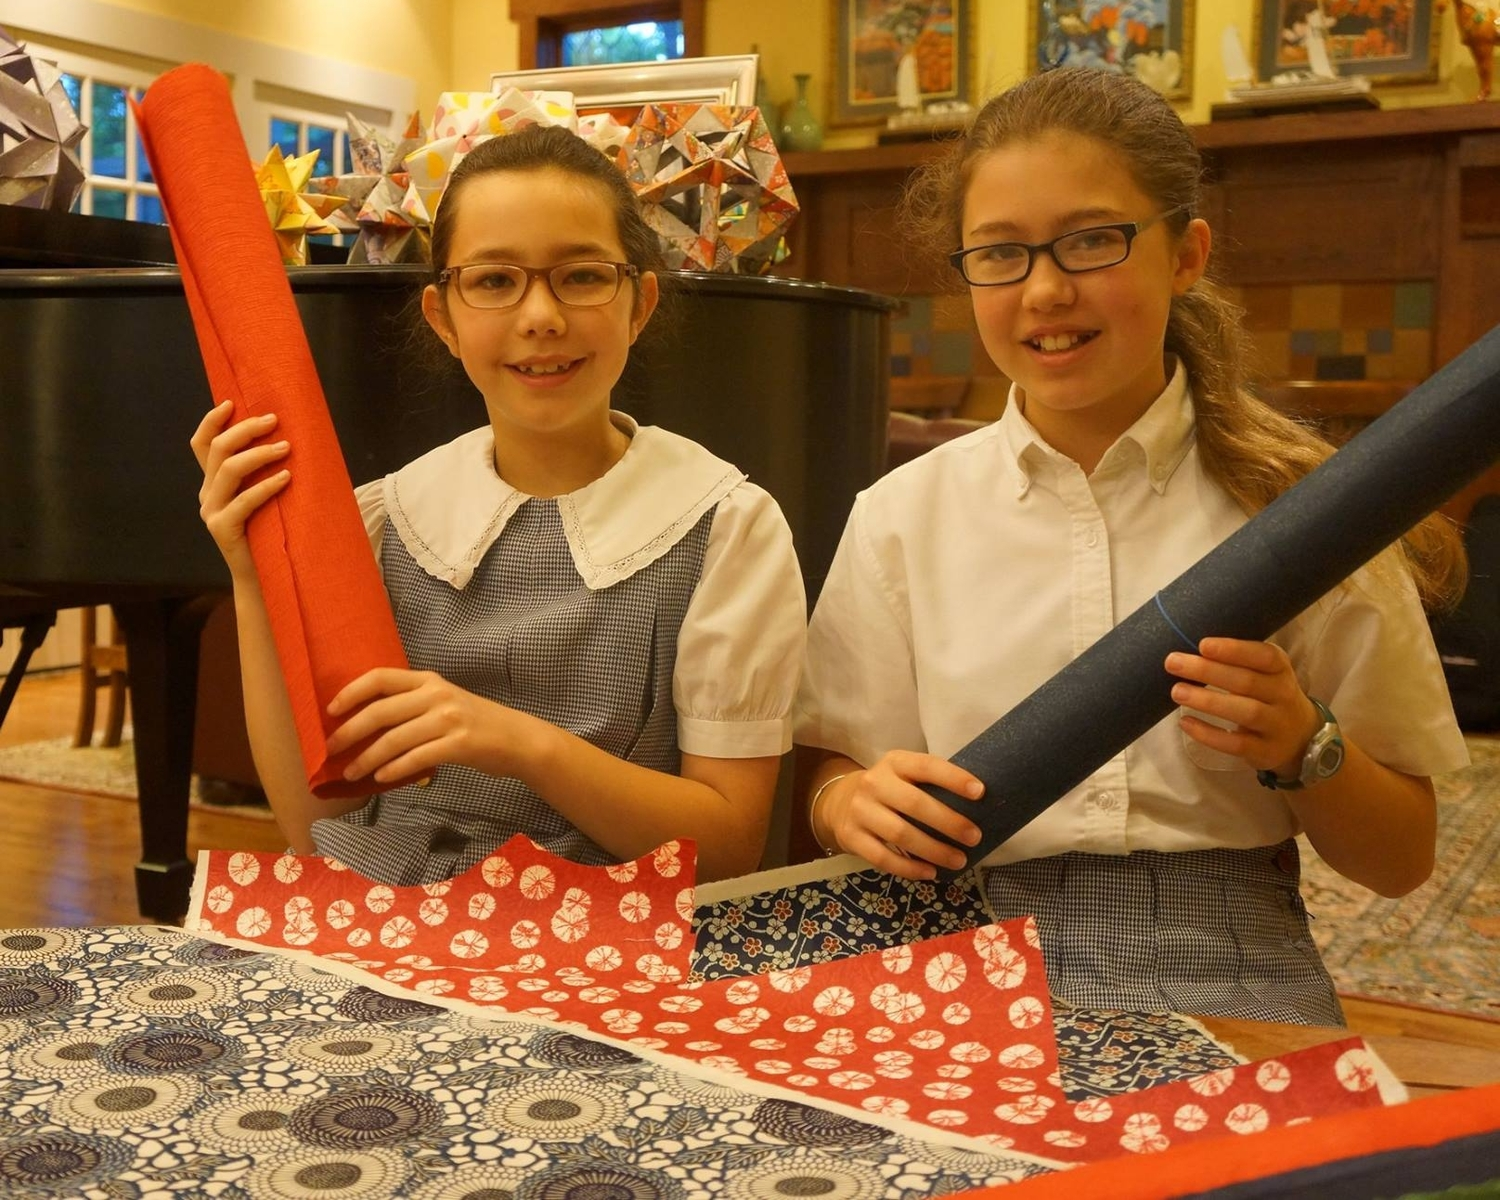 How Two Sisters Raised $815K for Charity By Folding Origami